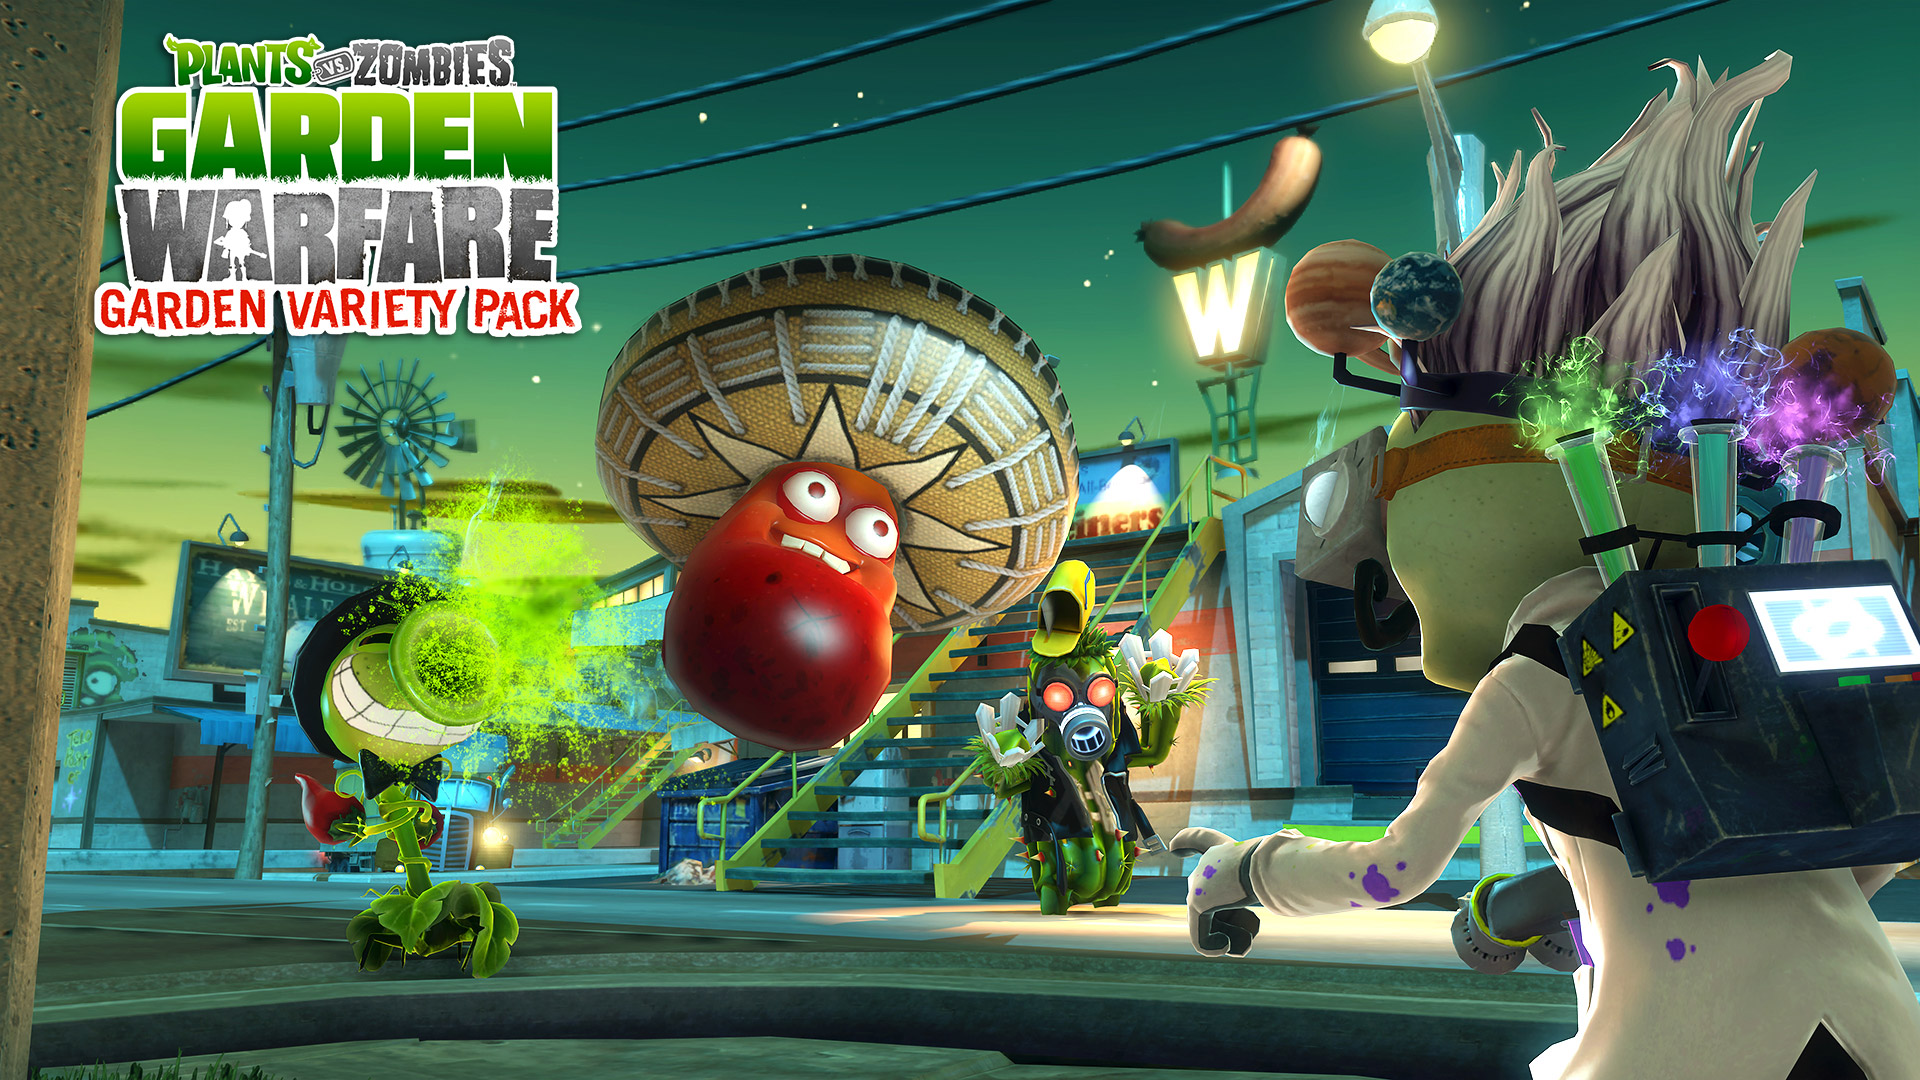 Plants VS Zombies Garden Warfare wallpaper 2